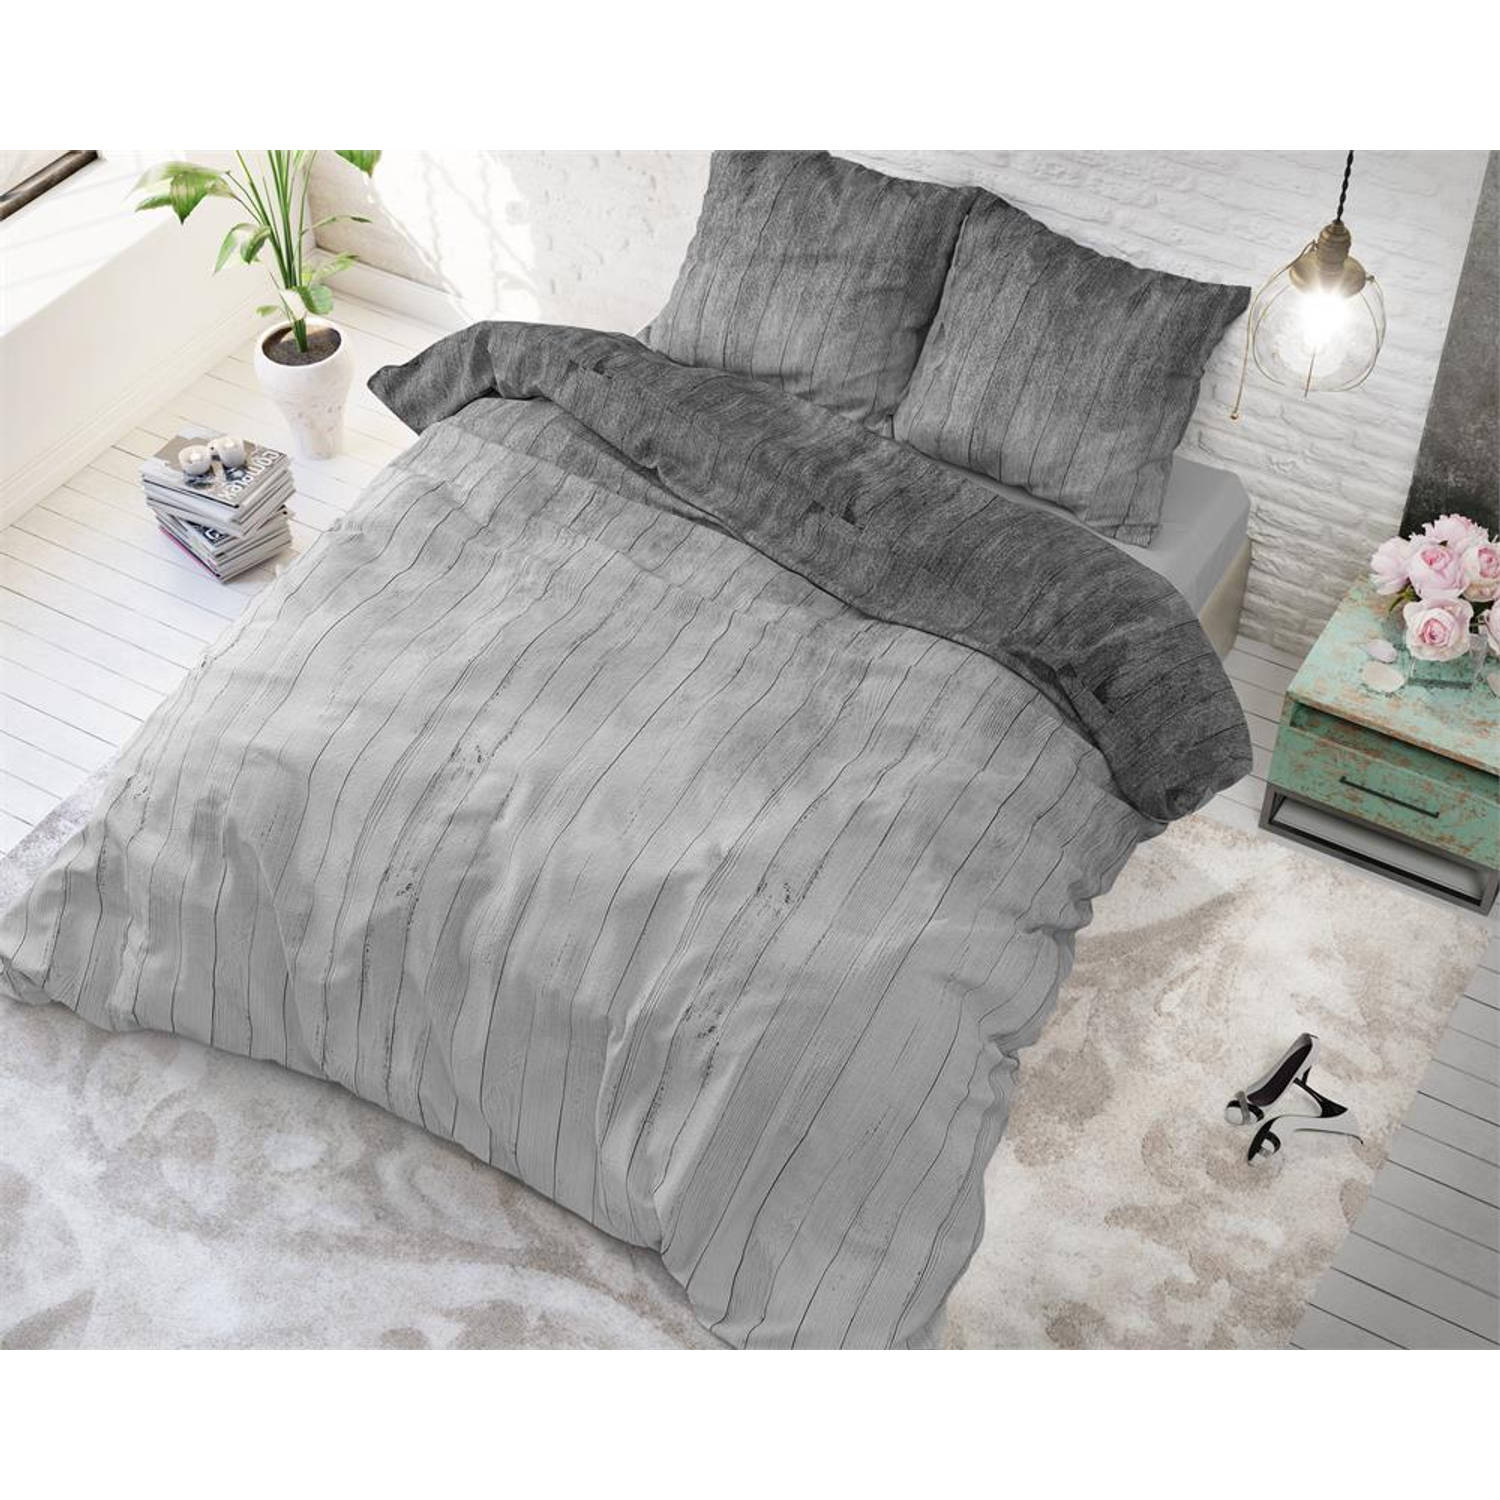 sleeptime wood fresh 2 grey dekbedovertrek lits jumeaux 240 cm blokker. Black Bedroom Furniture Sets. Home Design Ideas